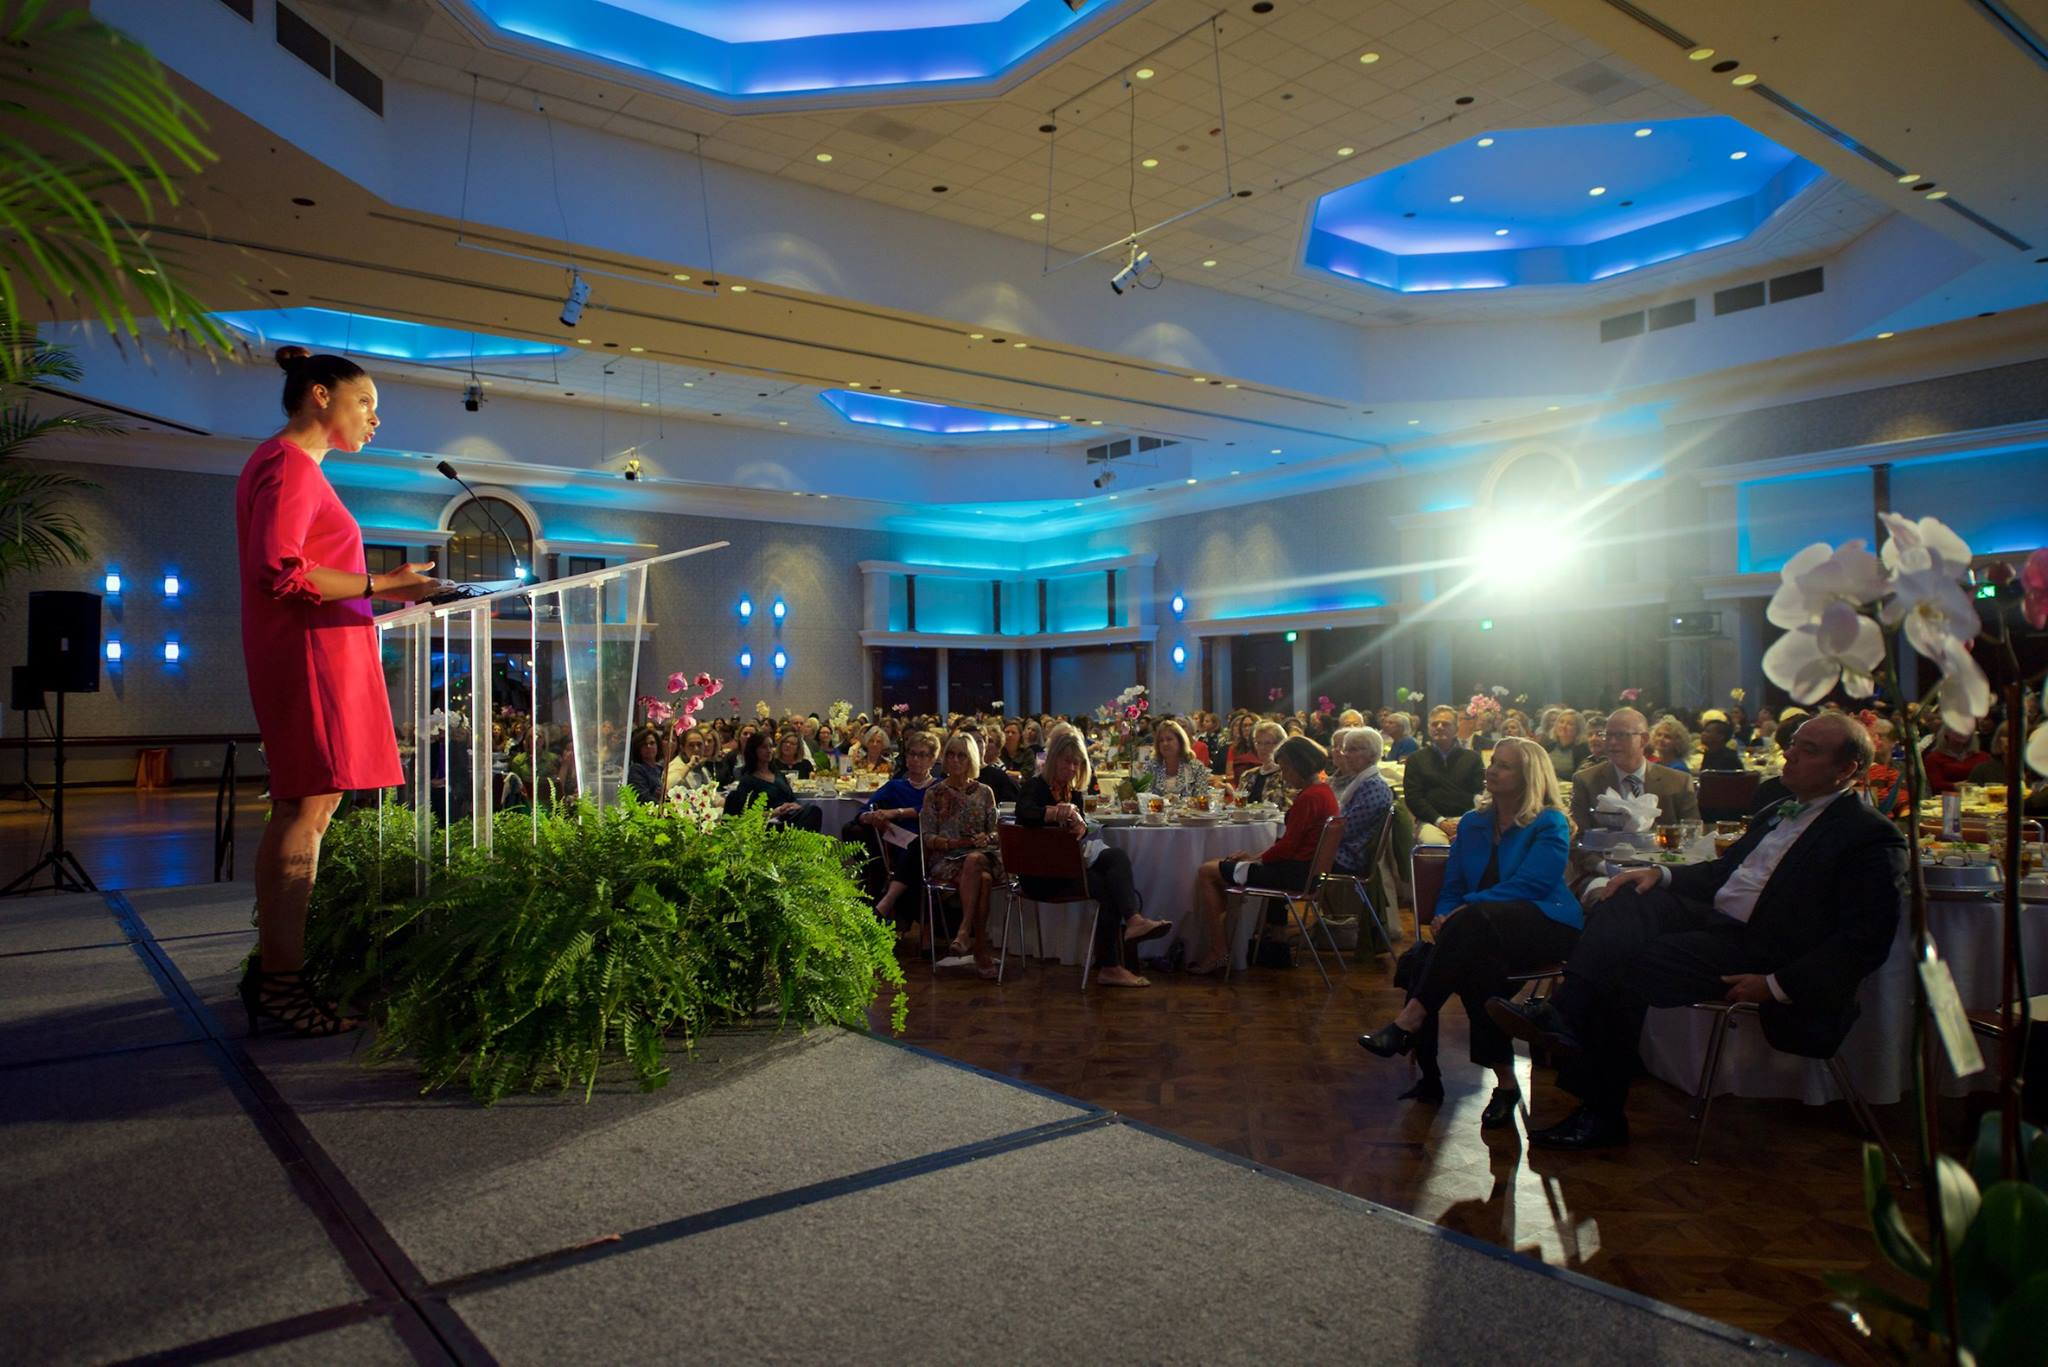 Conference and Corporate Events - We reduce the time, burden and stress of putting on large scale events so that you can focus on your companies' day-to-day. We handle all the logistics of your conference--from the planning, to onsite coordination, to post-conference wrap-up. So that you can achieve your return on investment!